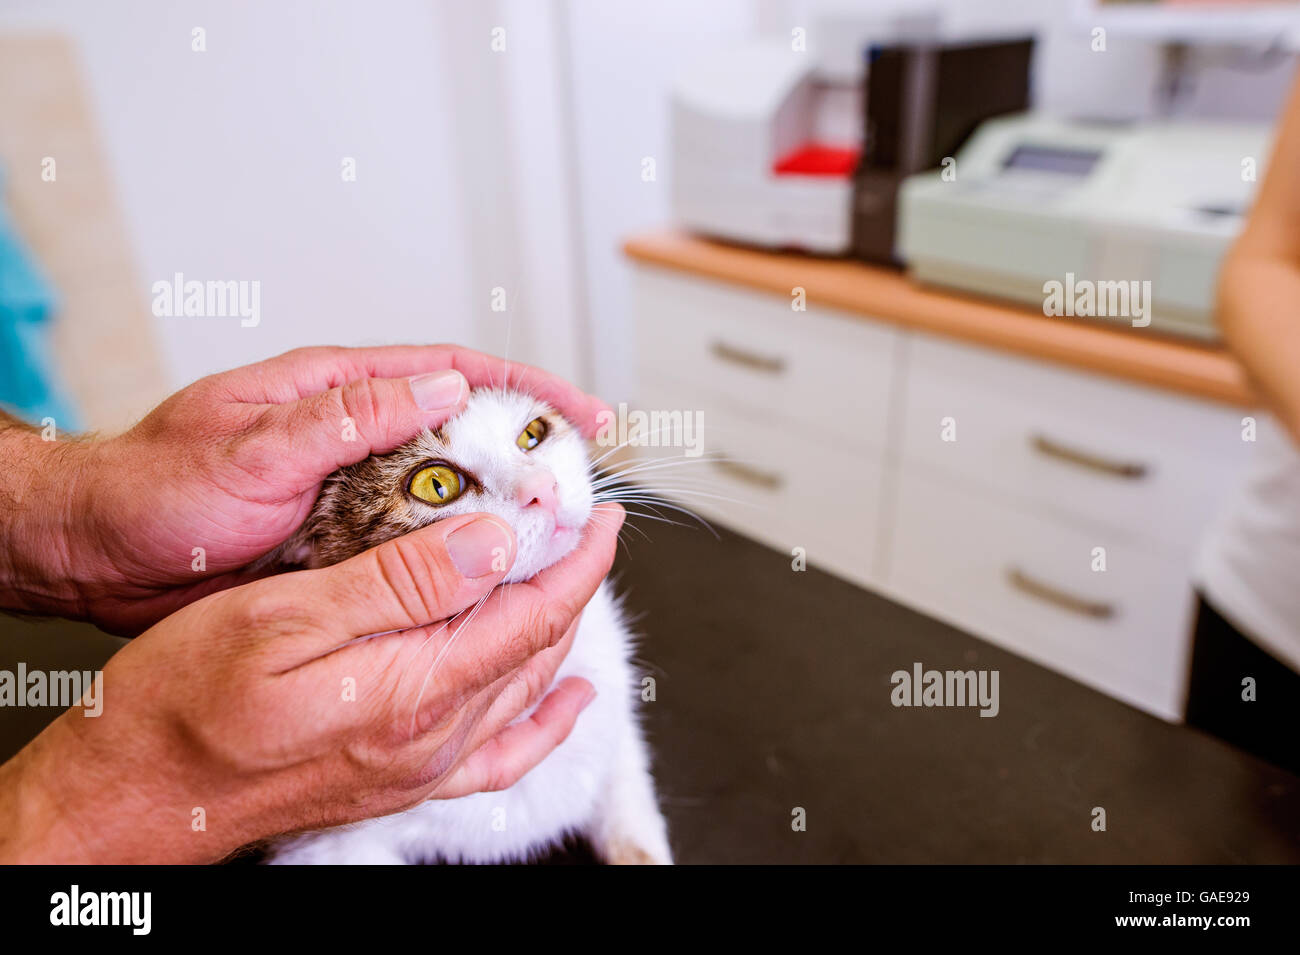 Veterinarian examining cat with sore eye at Veterinary clinic. - Stock Image